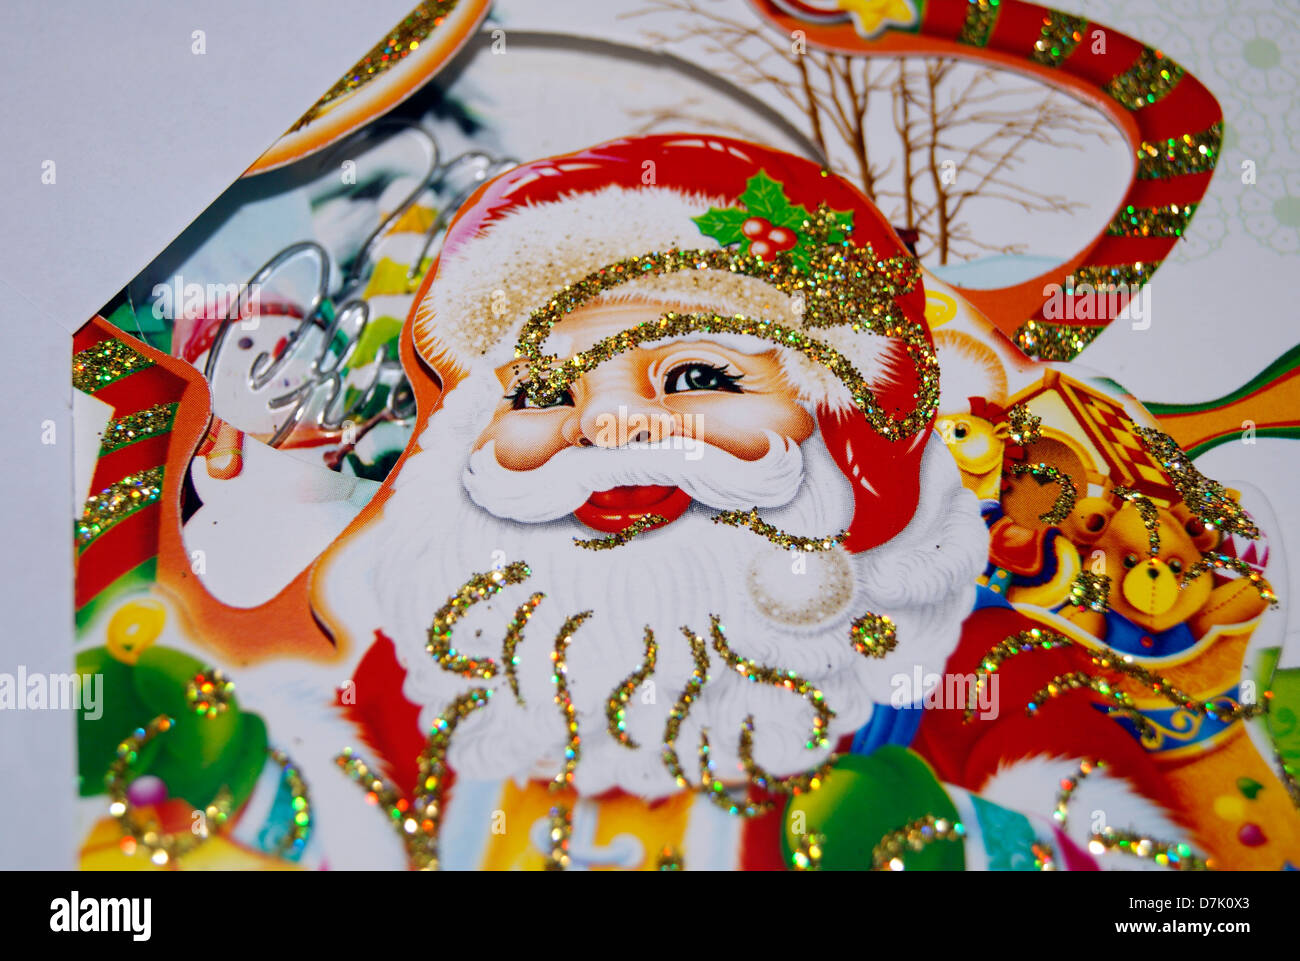 Santa Claus Smiling face on Christmas Greeting card - Stock Image